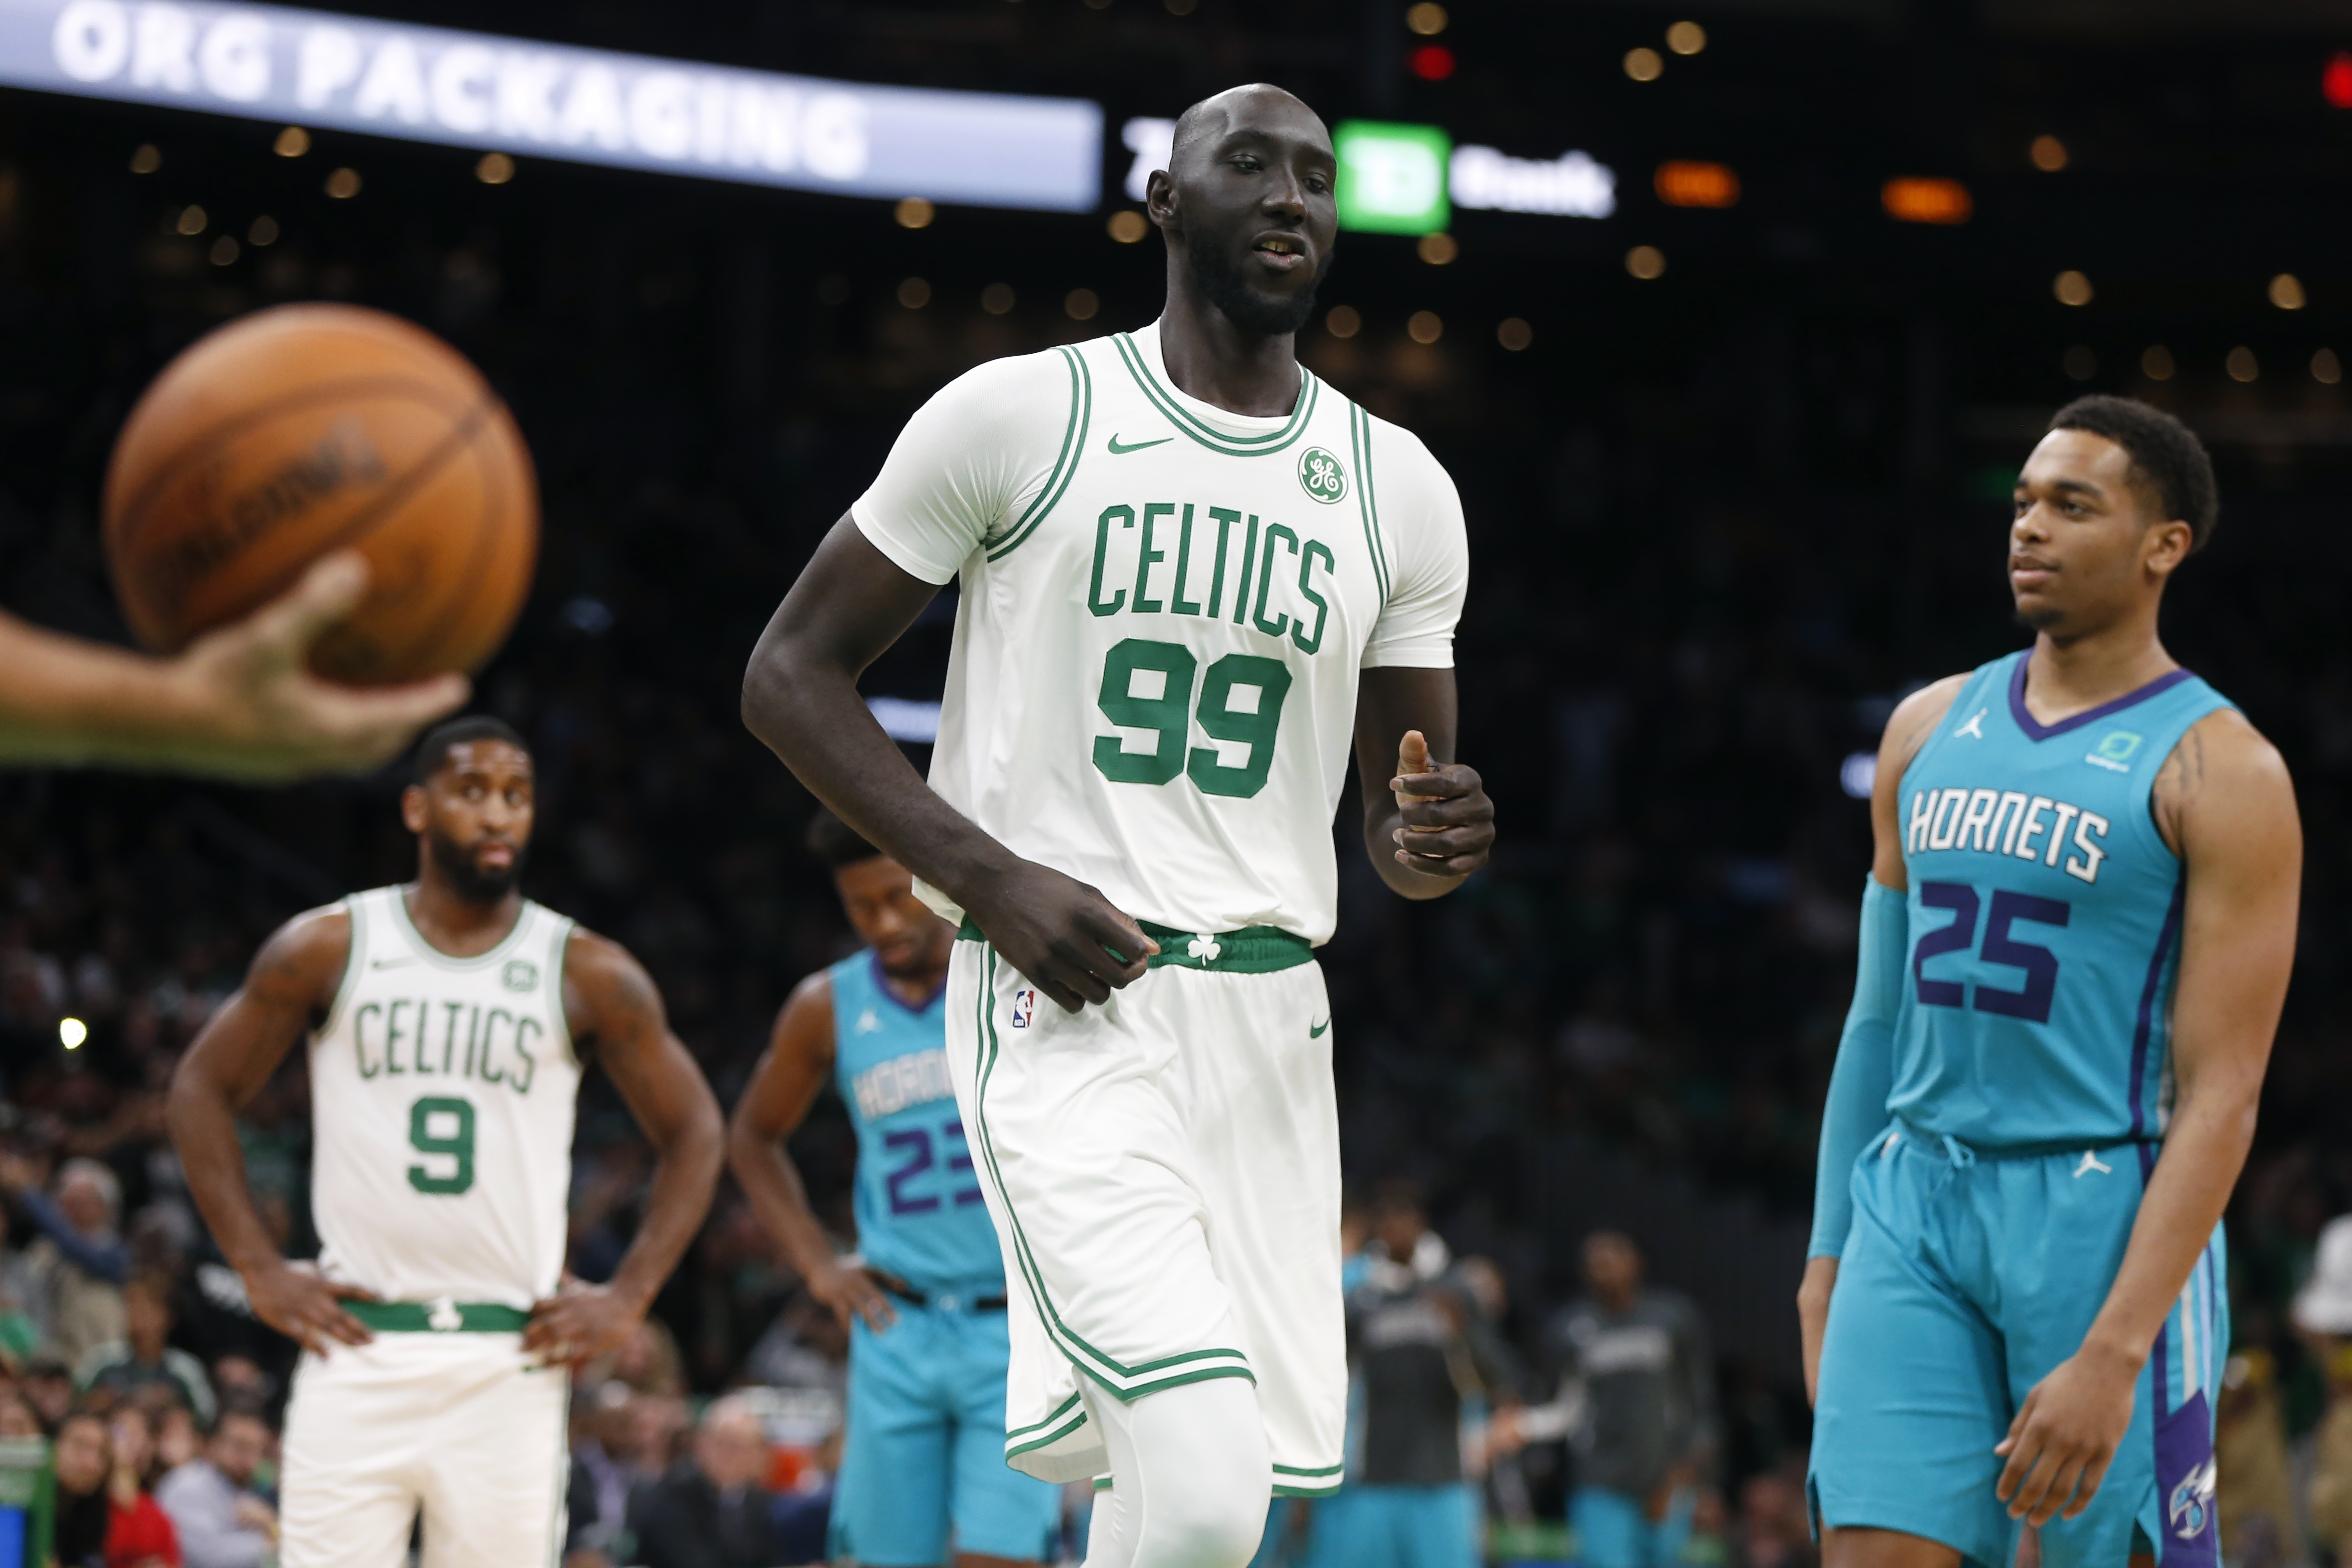 Boston Celtics Tacko Fall reveals cause of concussion, is 'very close' to return - masslive.com